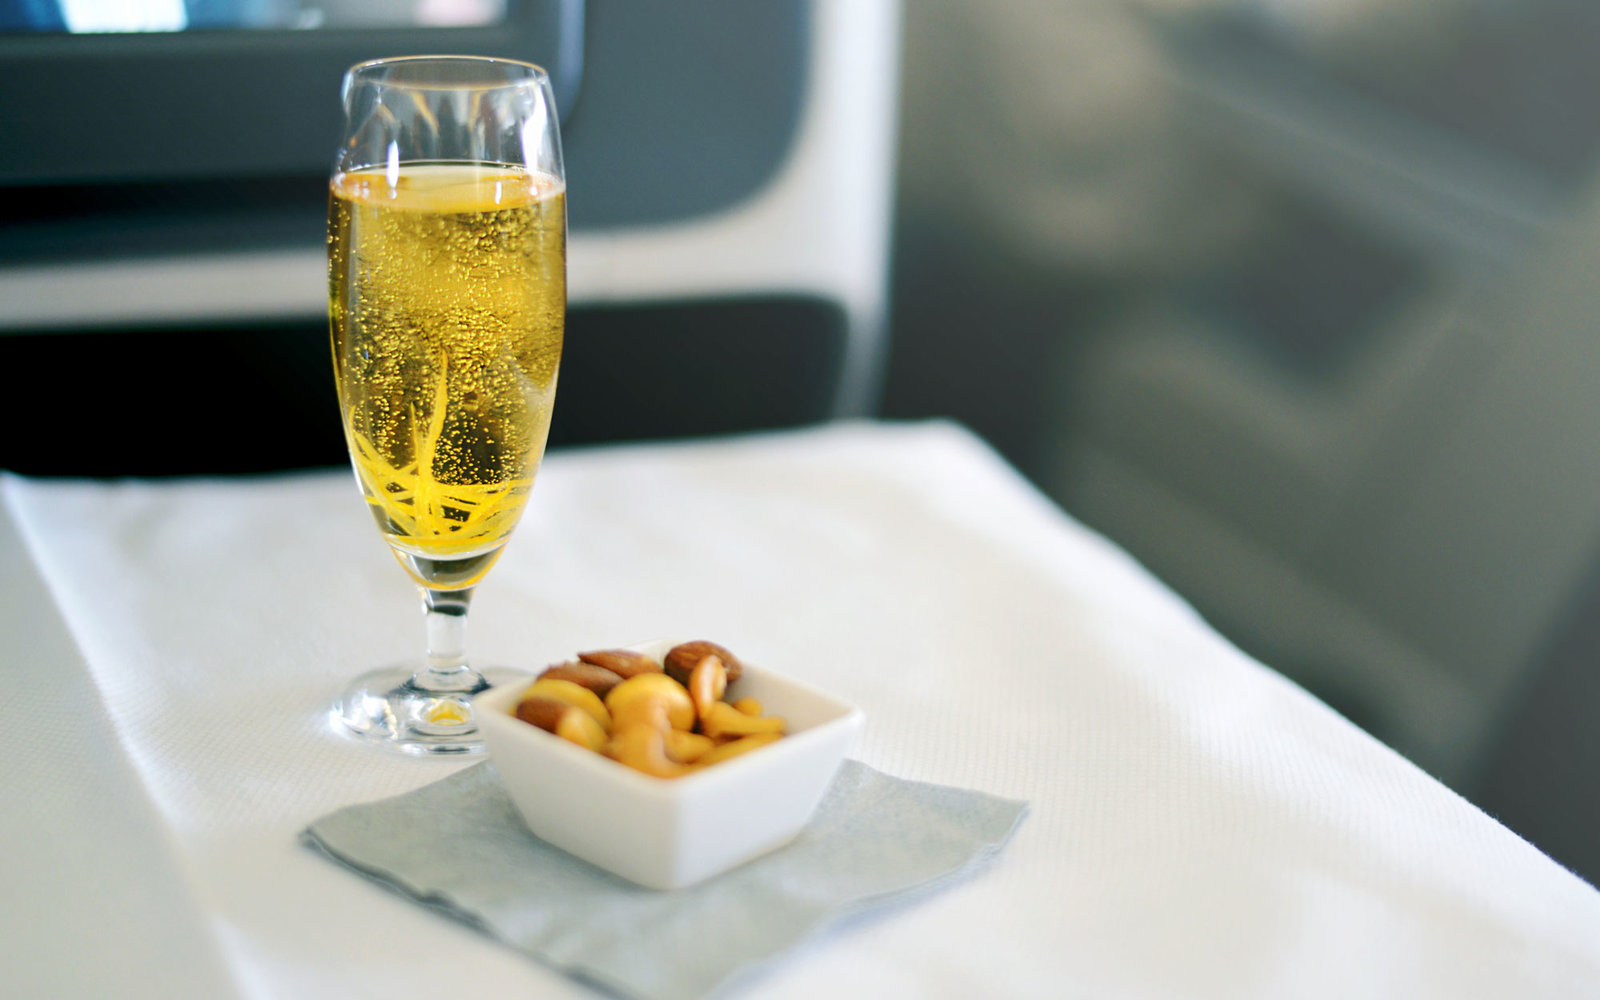 How Drunk is Too Drunk on a Plane? An Etiquette Expert Weighs in